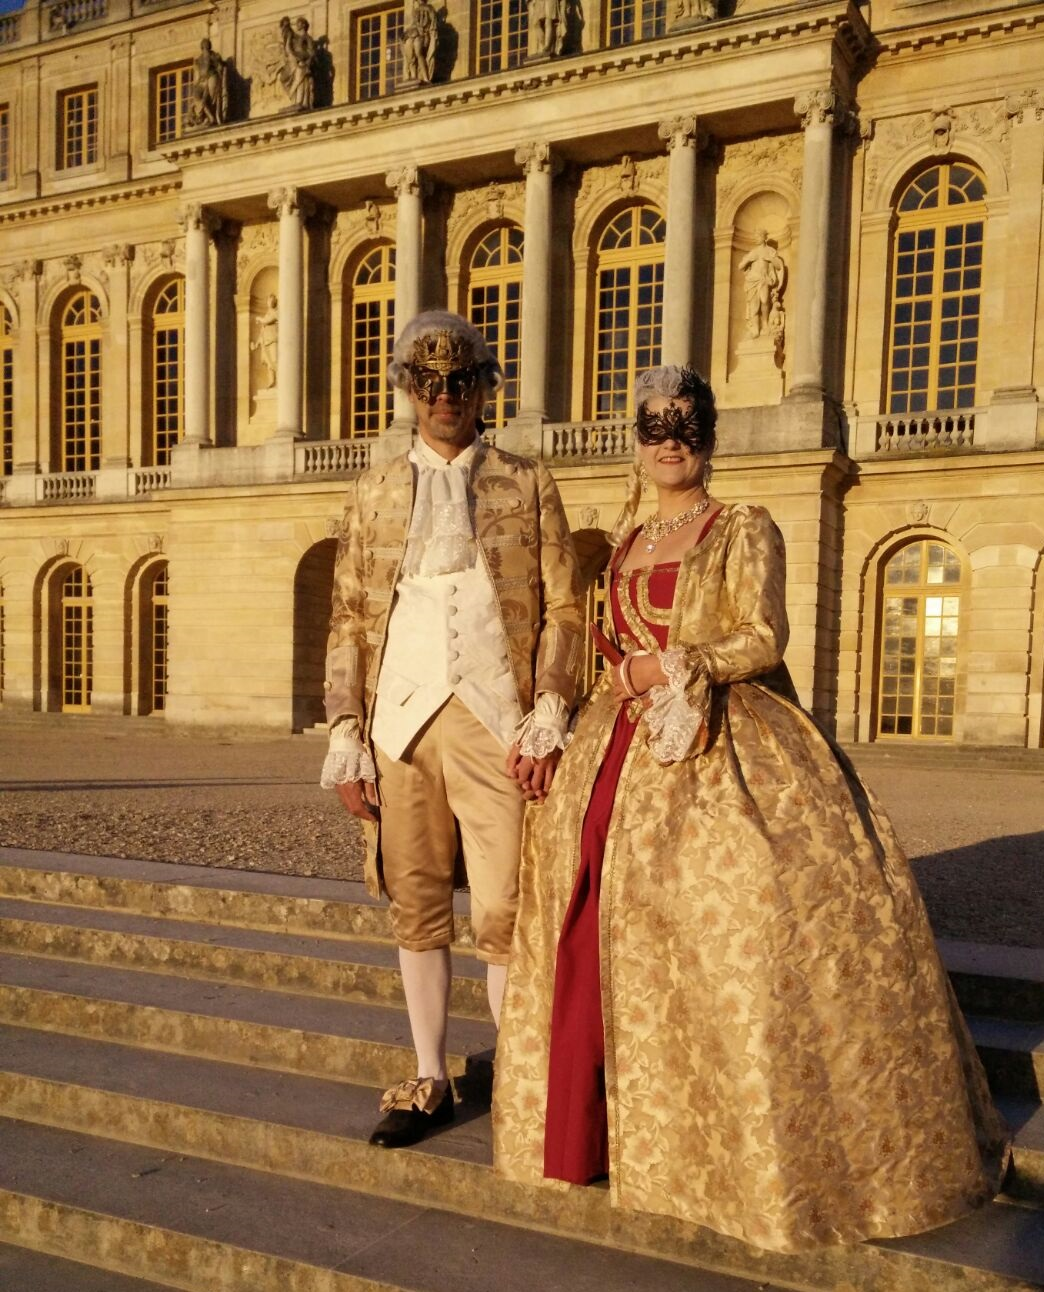 media/com_crc/members/392/images/31-CouplePerrierVersailles2016.JPG